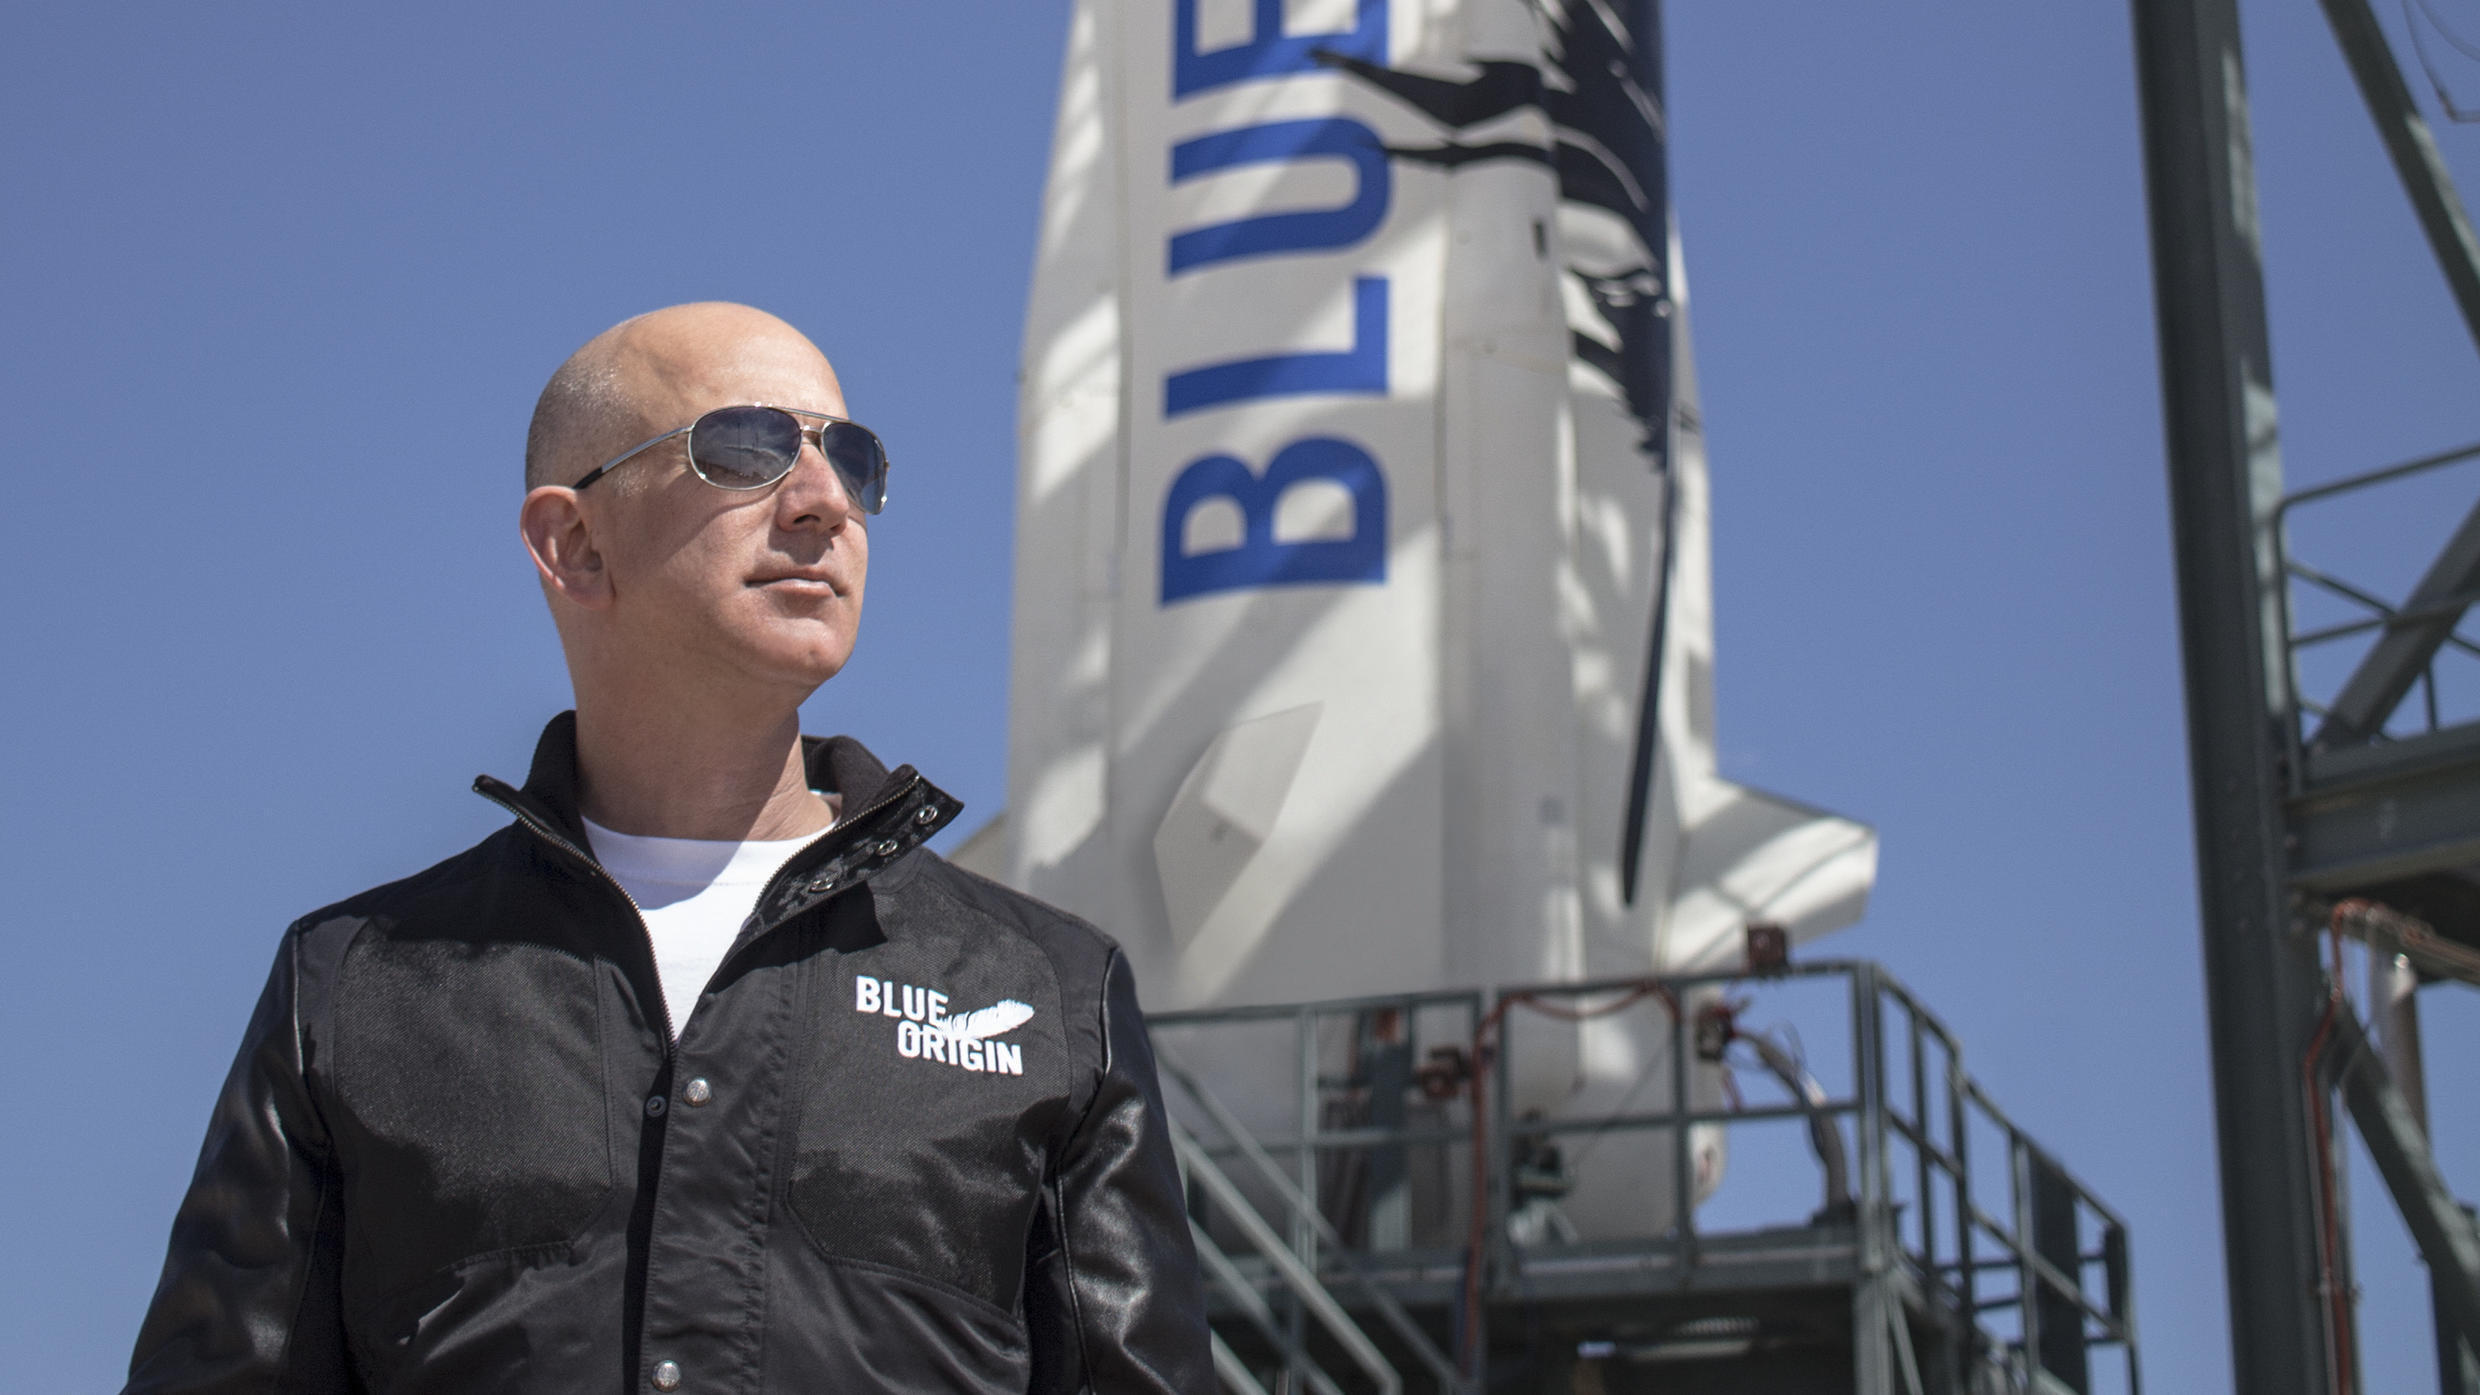 Amazon CEO Jeff Bezos, who also own the Blue Origin rocket company, has gotten richer during the Covid-19 pandemic.